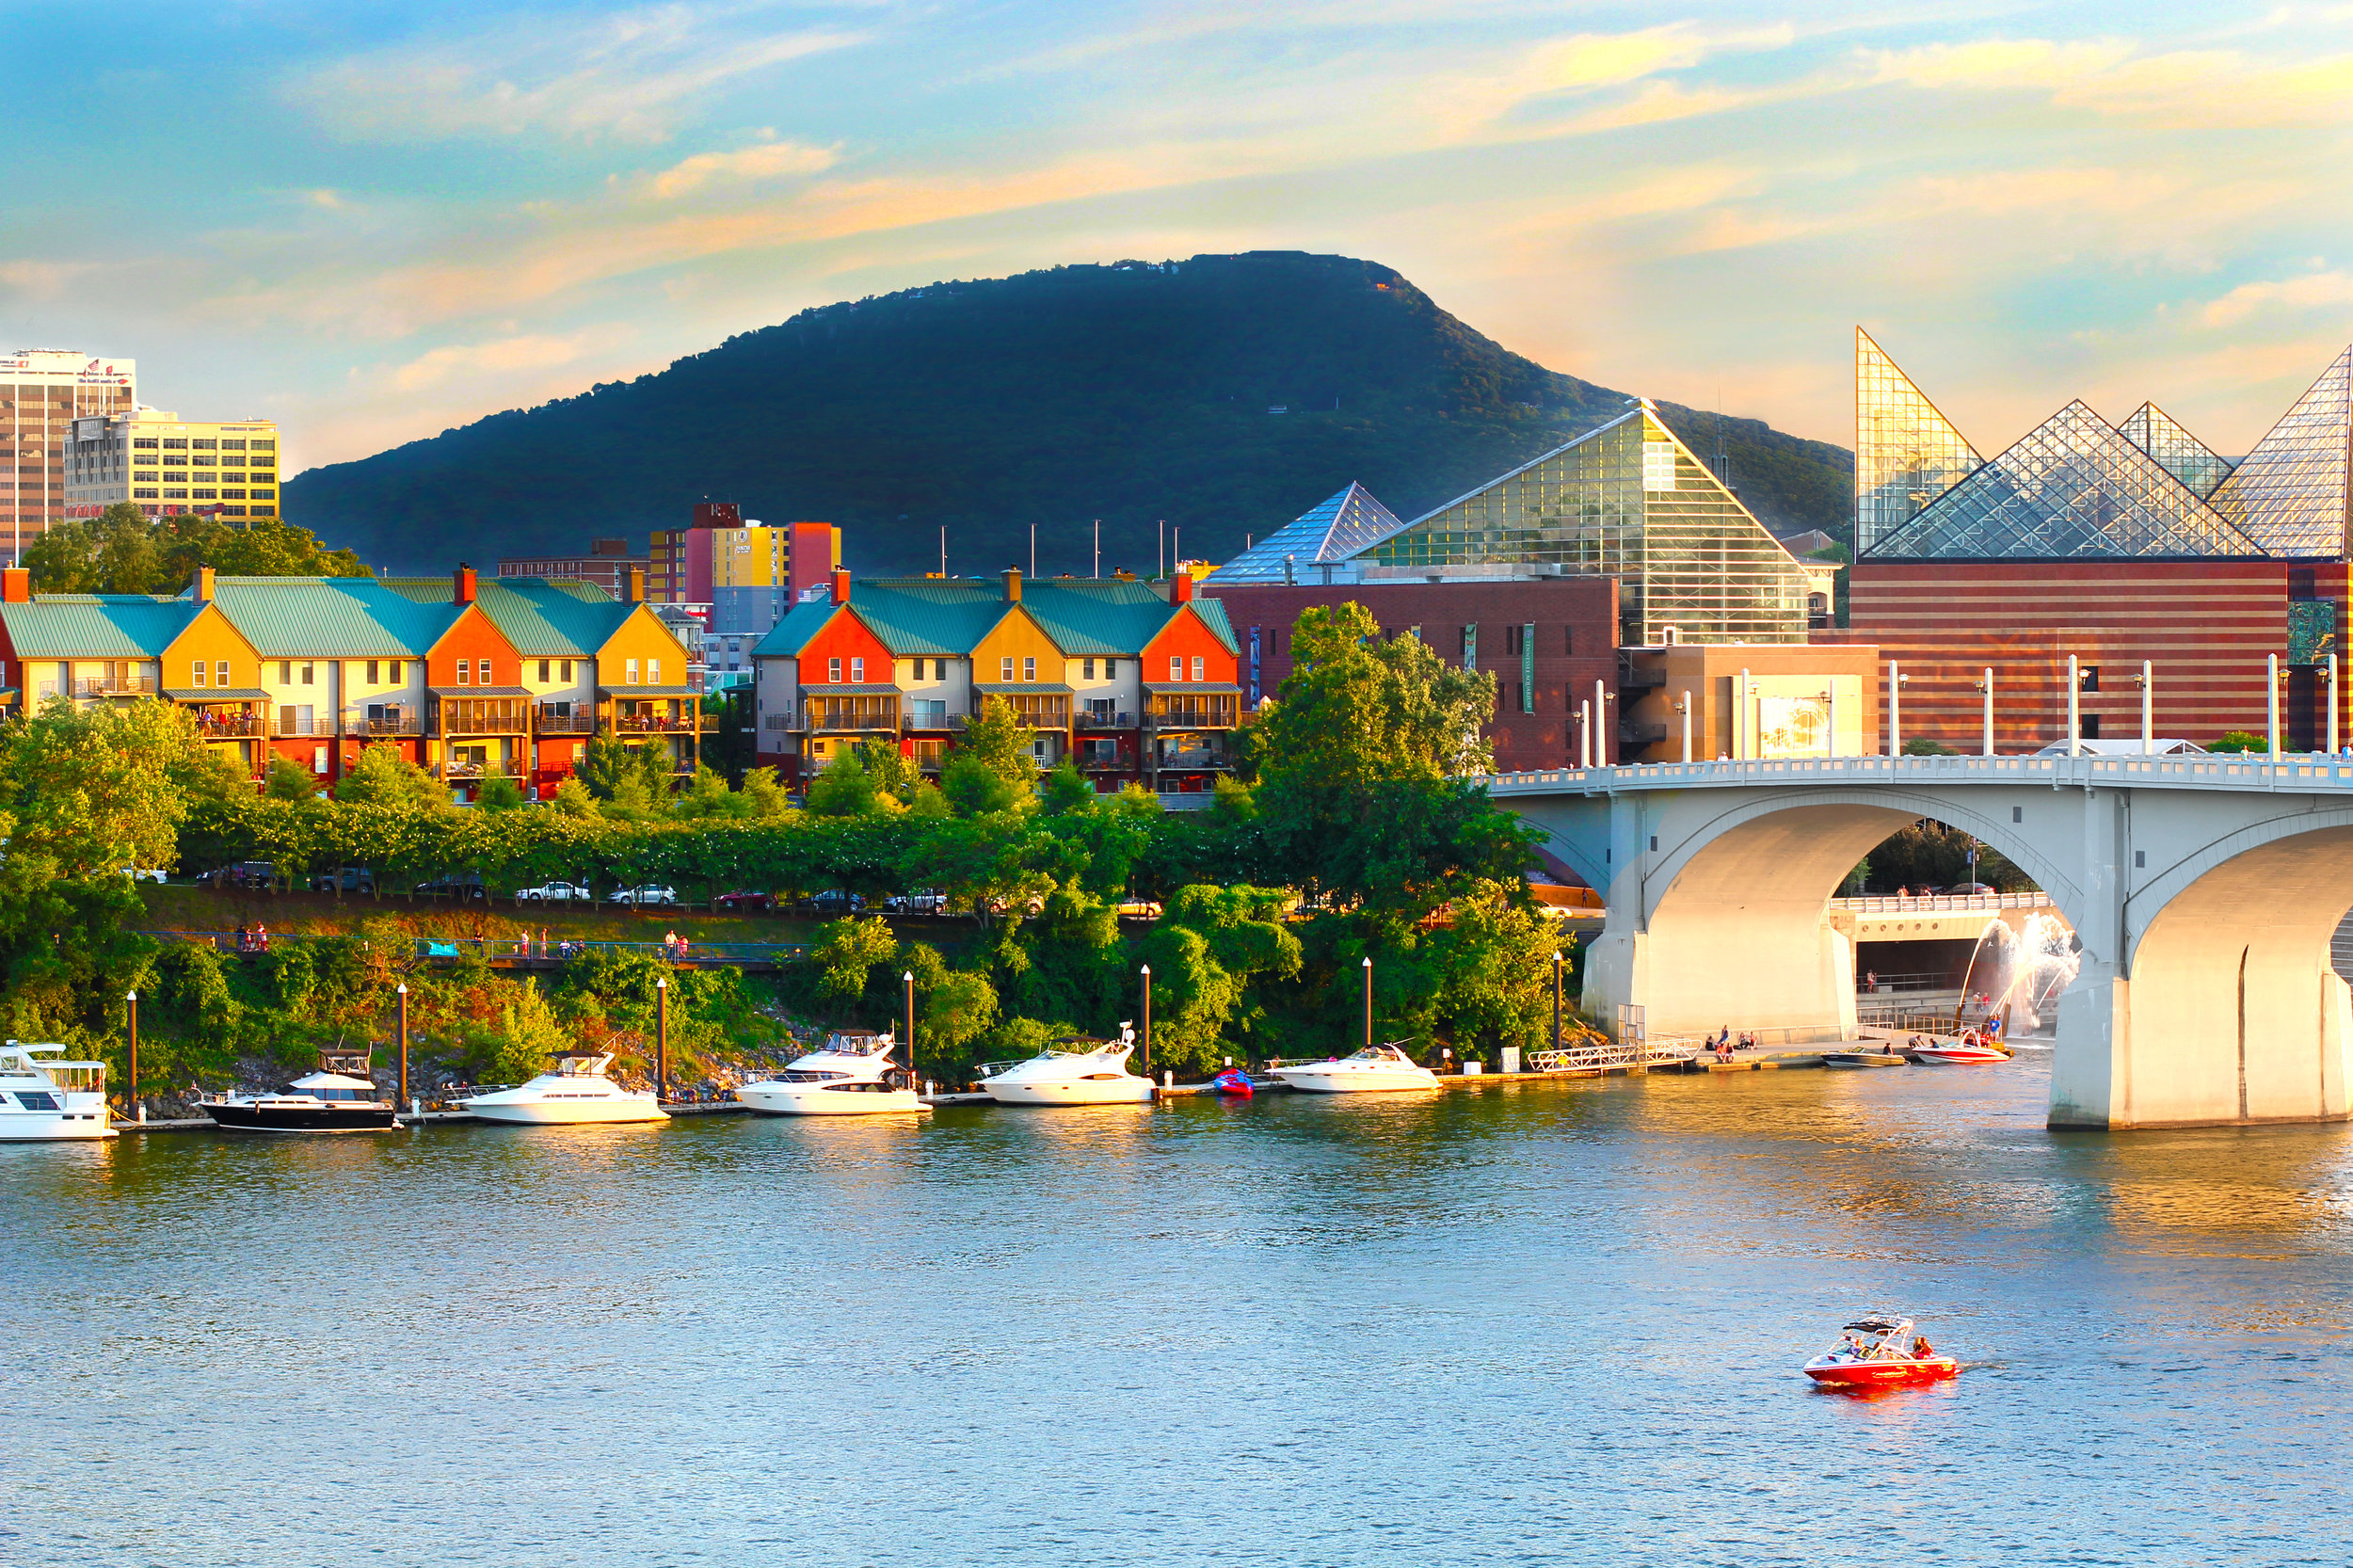 By 2015, Chattanooga was one of the cleanest cities in America and the only two-time winner of Outside's Best Town Ever. -